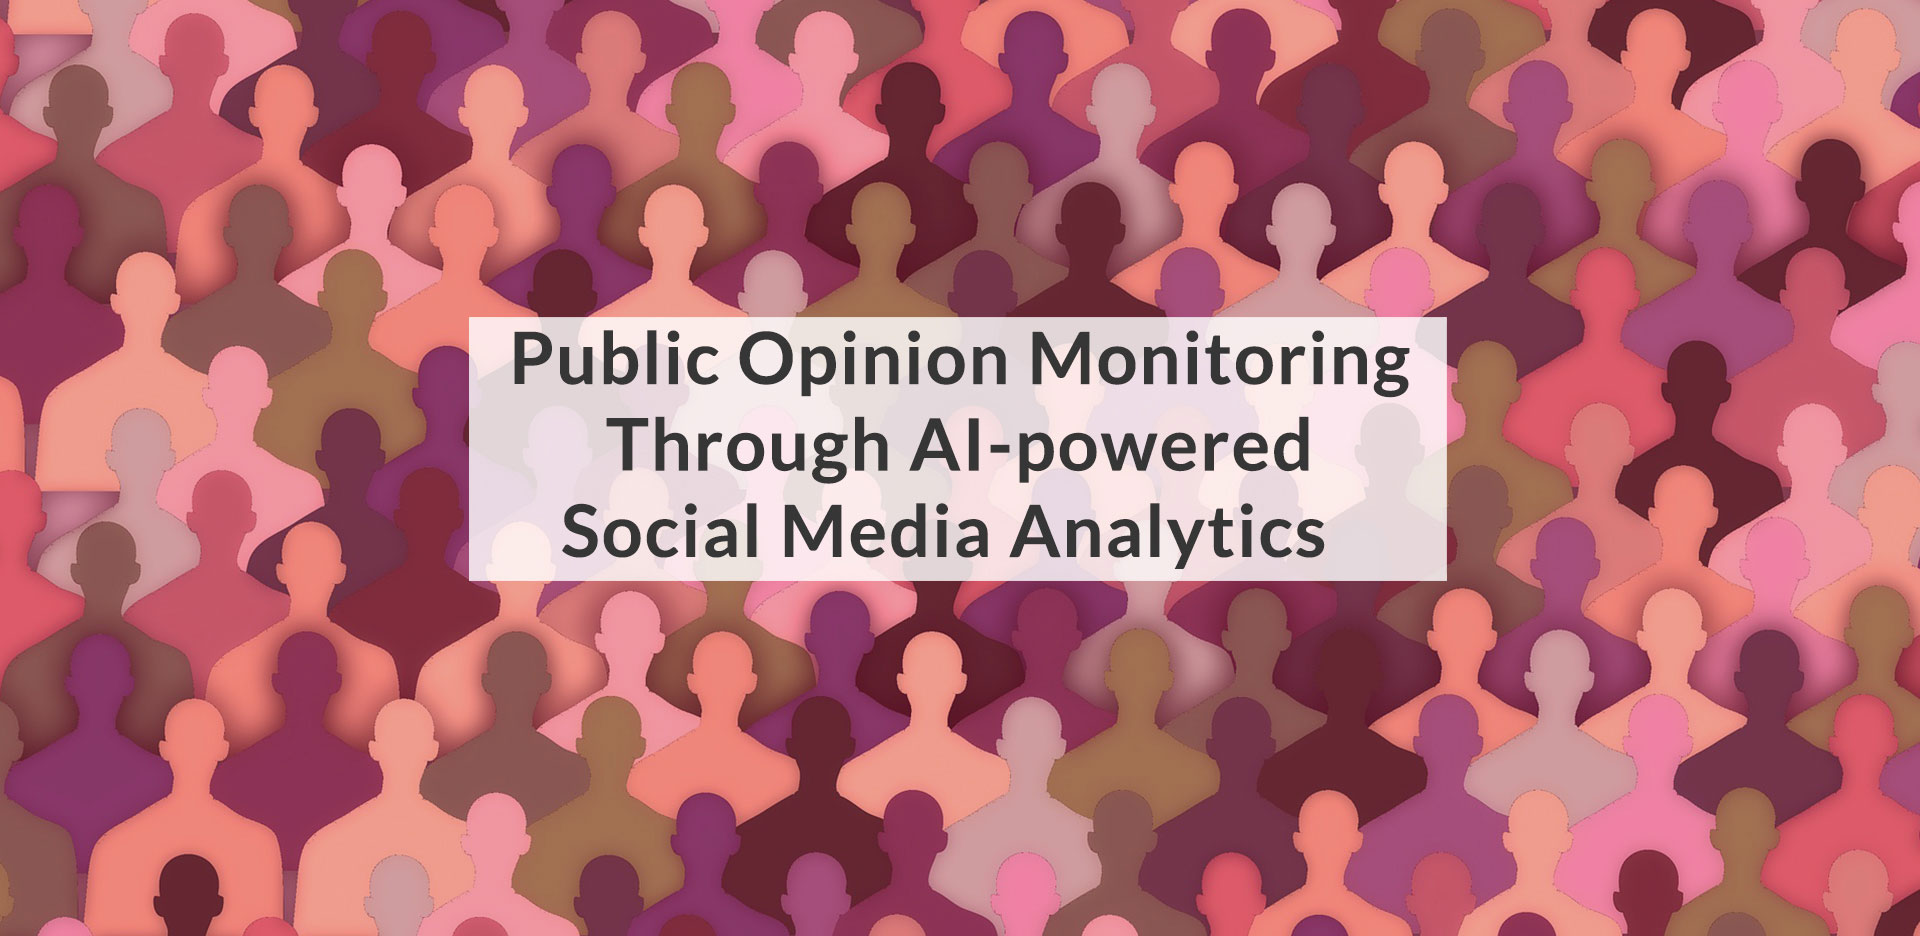 Public Opinion Monitoring Through AI-powered Social Media Analytics